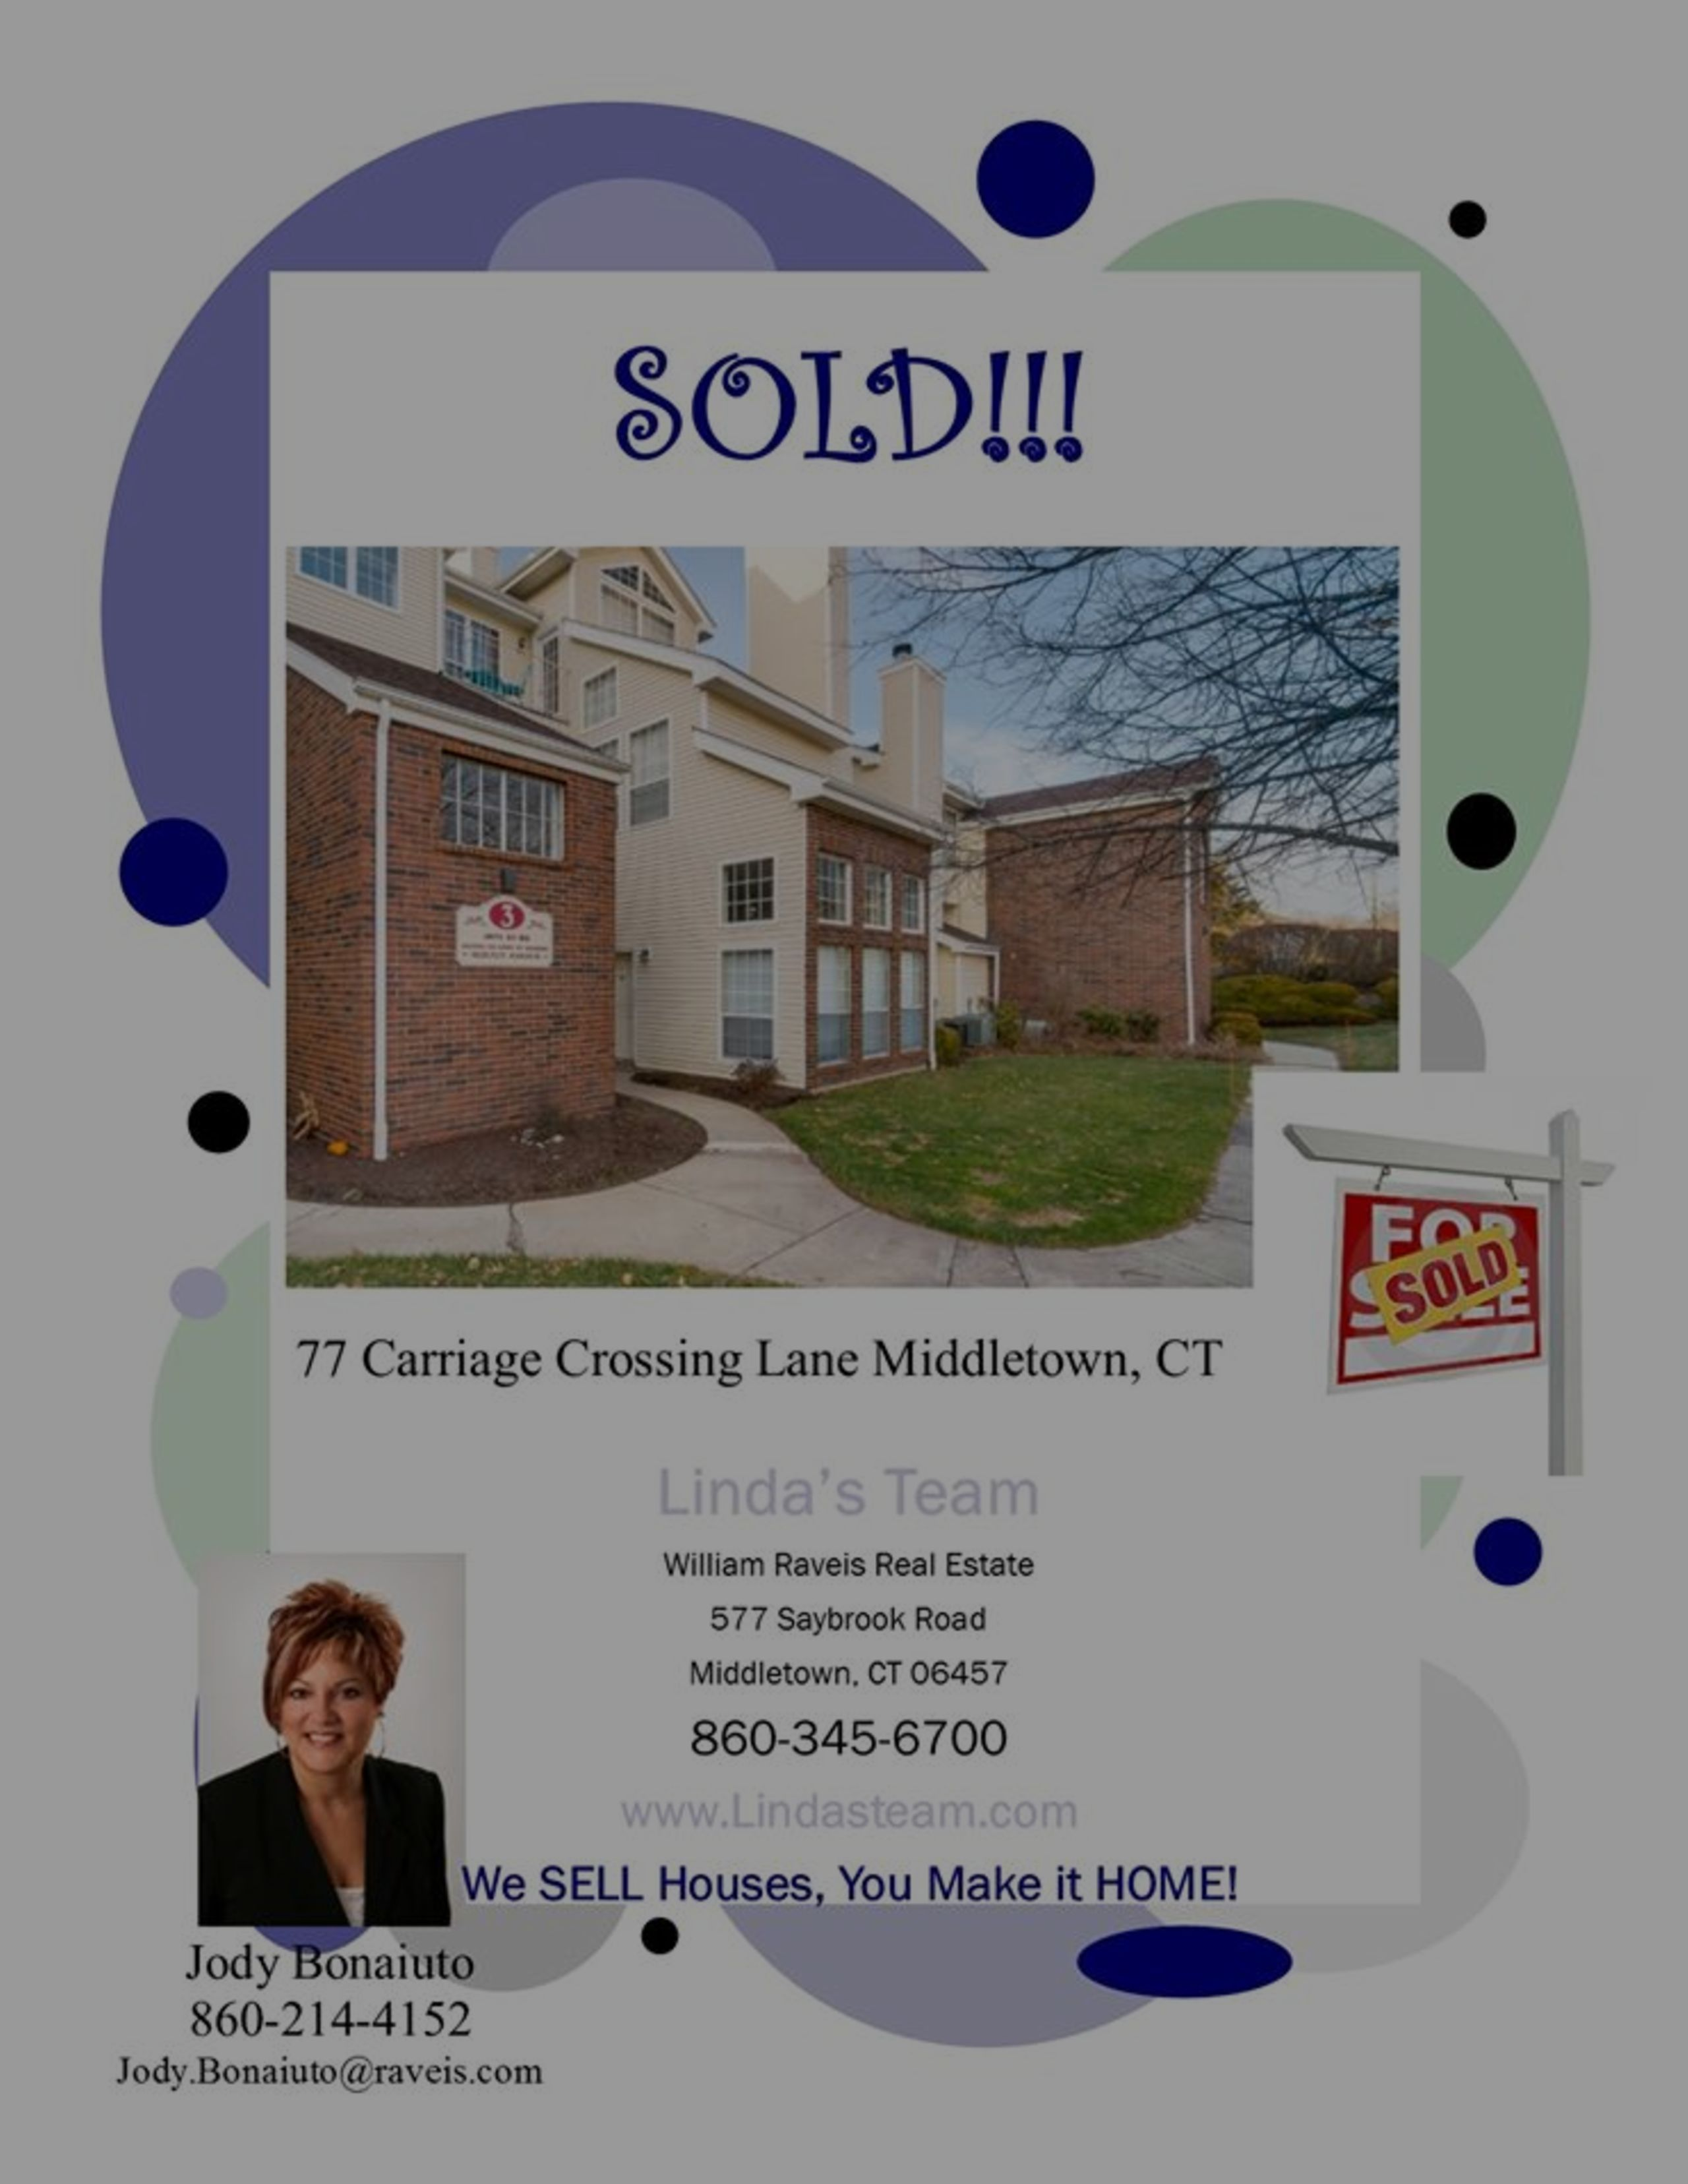 *SOLD* 77 Carriage Crossing Lane, Middletown, CT